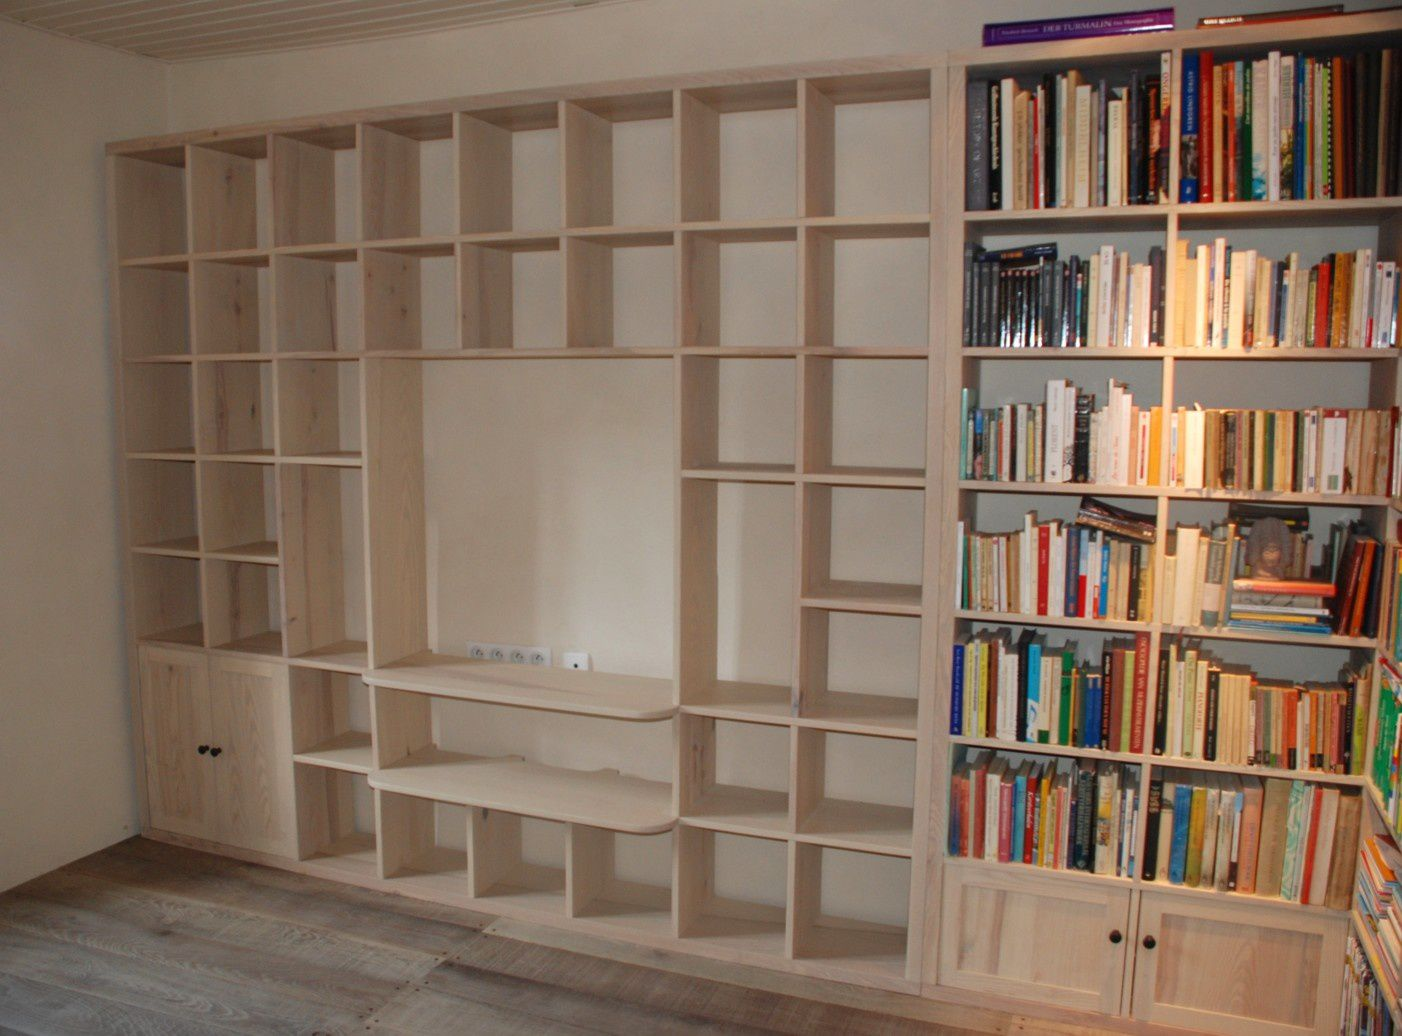 Construire Une Biblioth Que Murale Aq17 Jornalagora # Creation Meuble Tv Bibliotheque Bureau